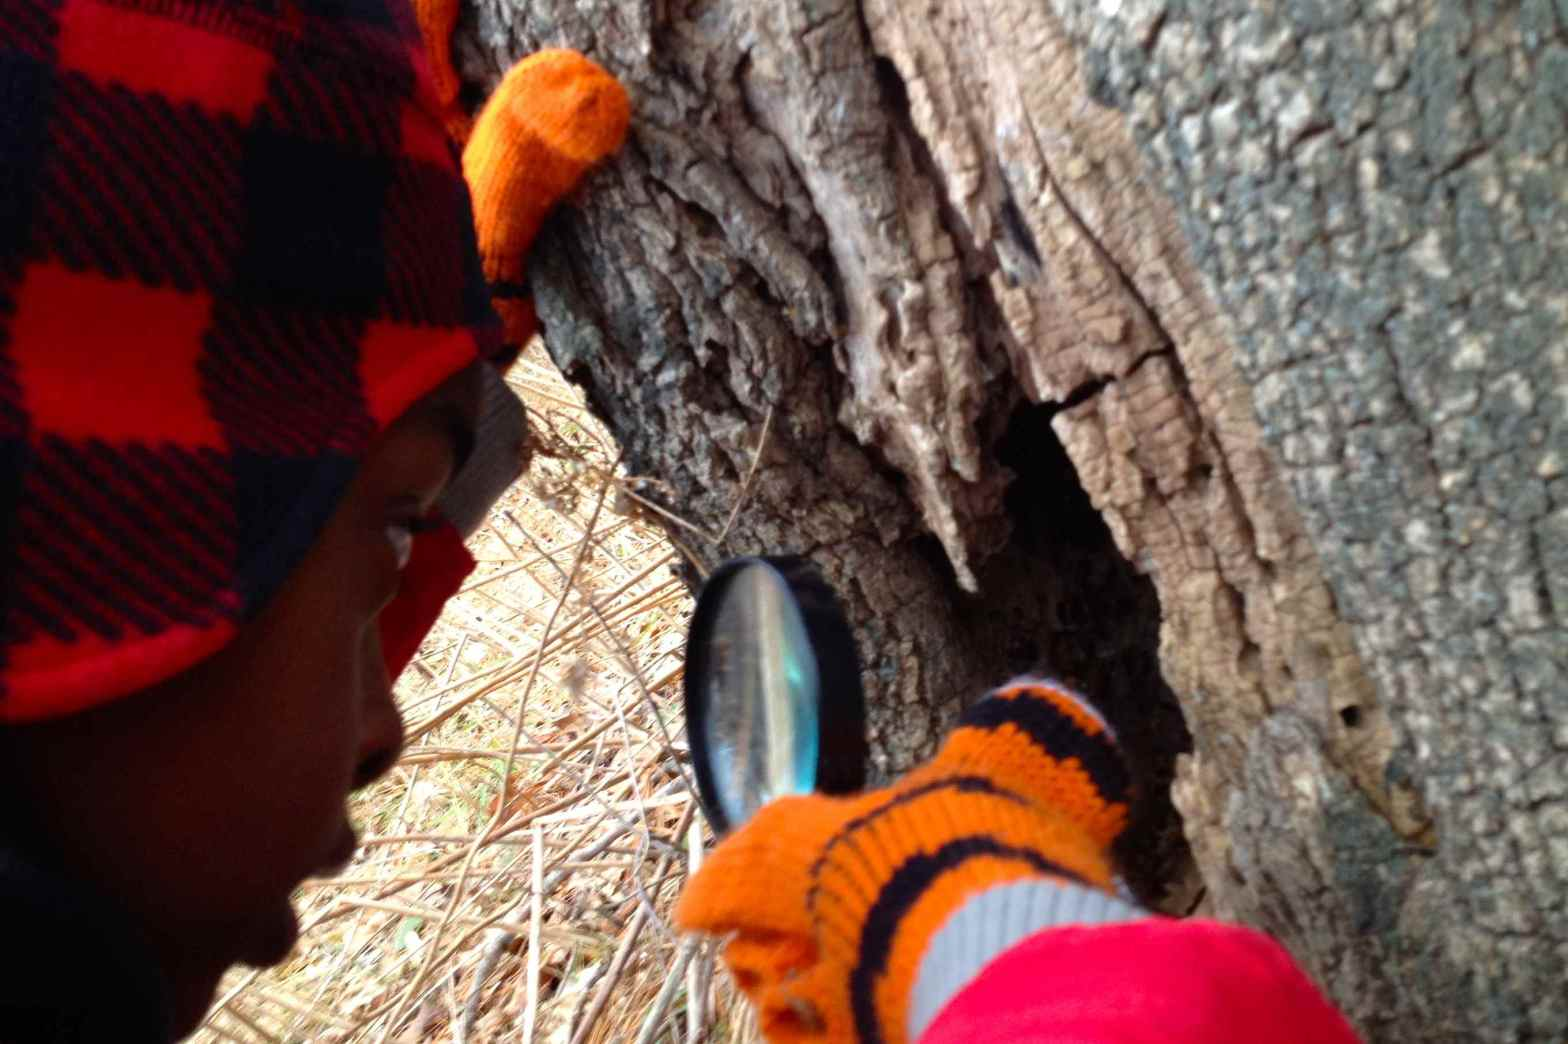 boy using magnifier to examine tree crevice